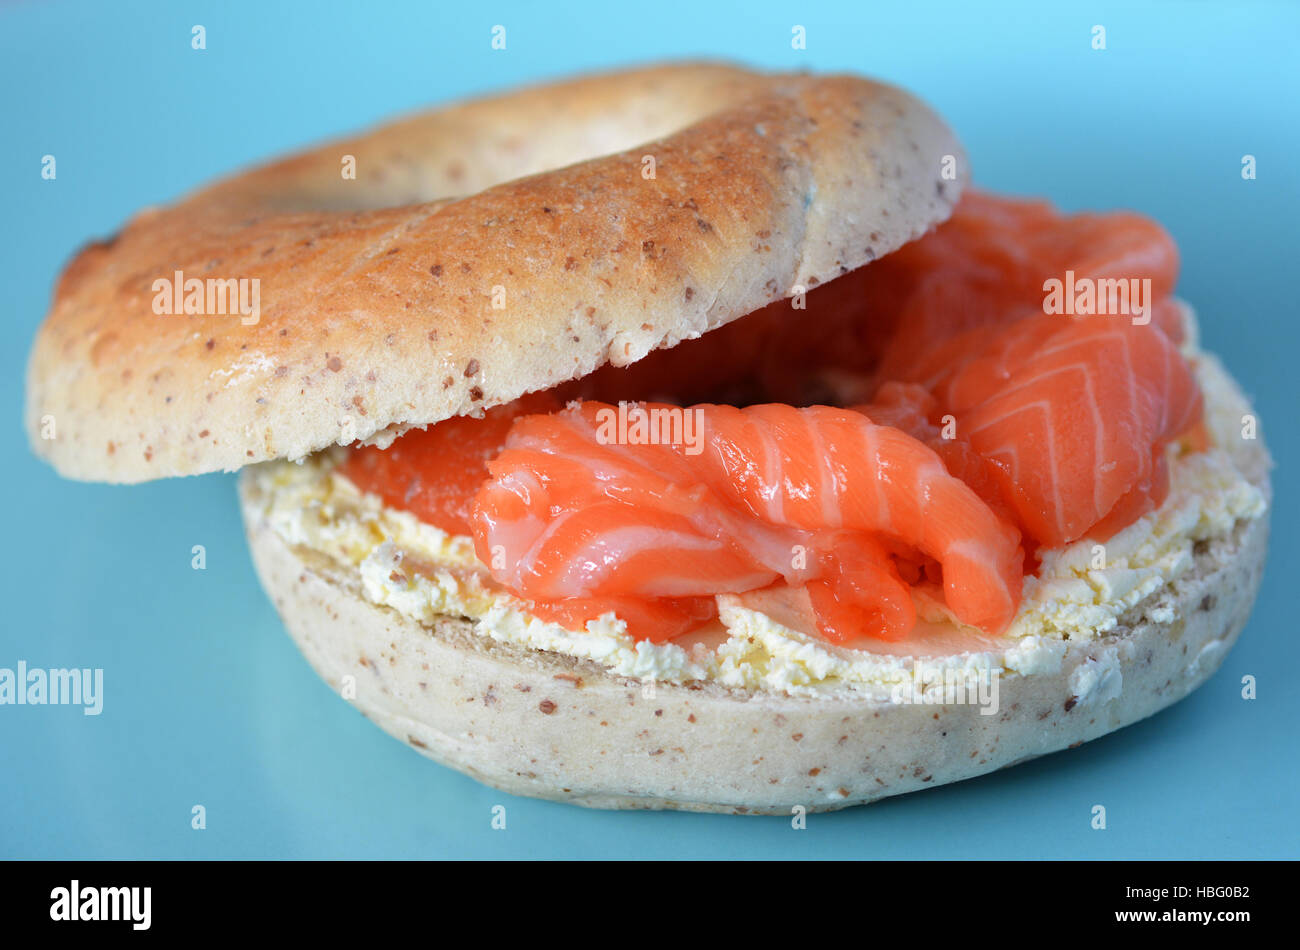 New York Salmon bagel served on a plate. Food background and texture. copy space Stock Photo